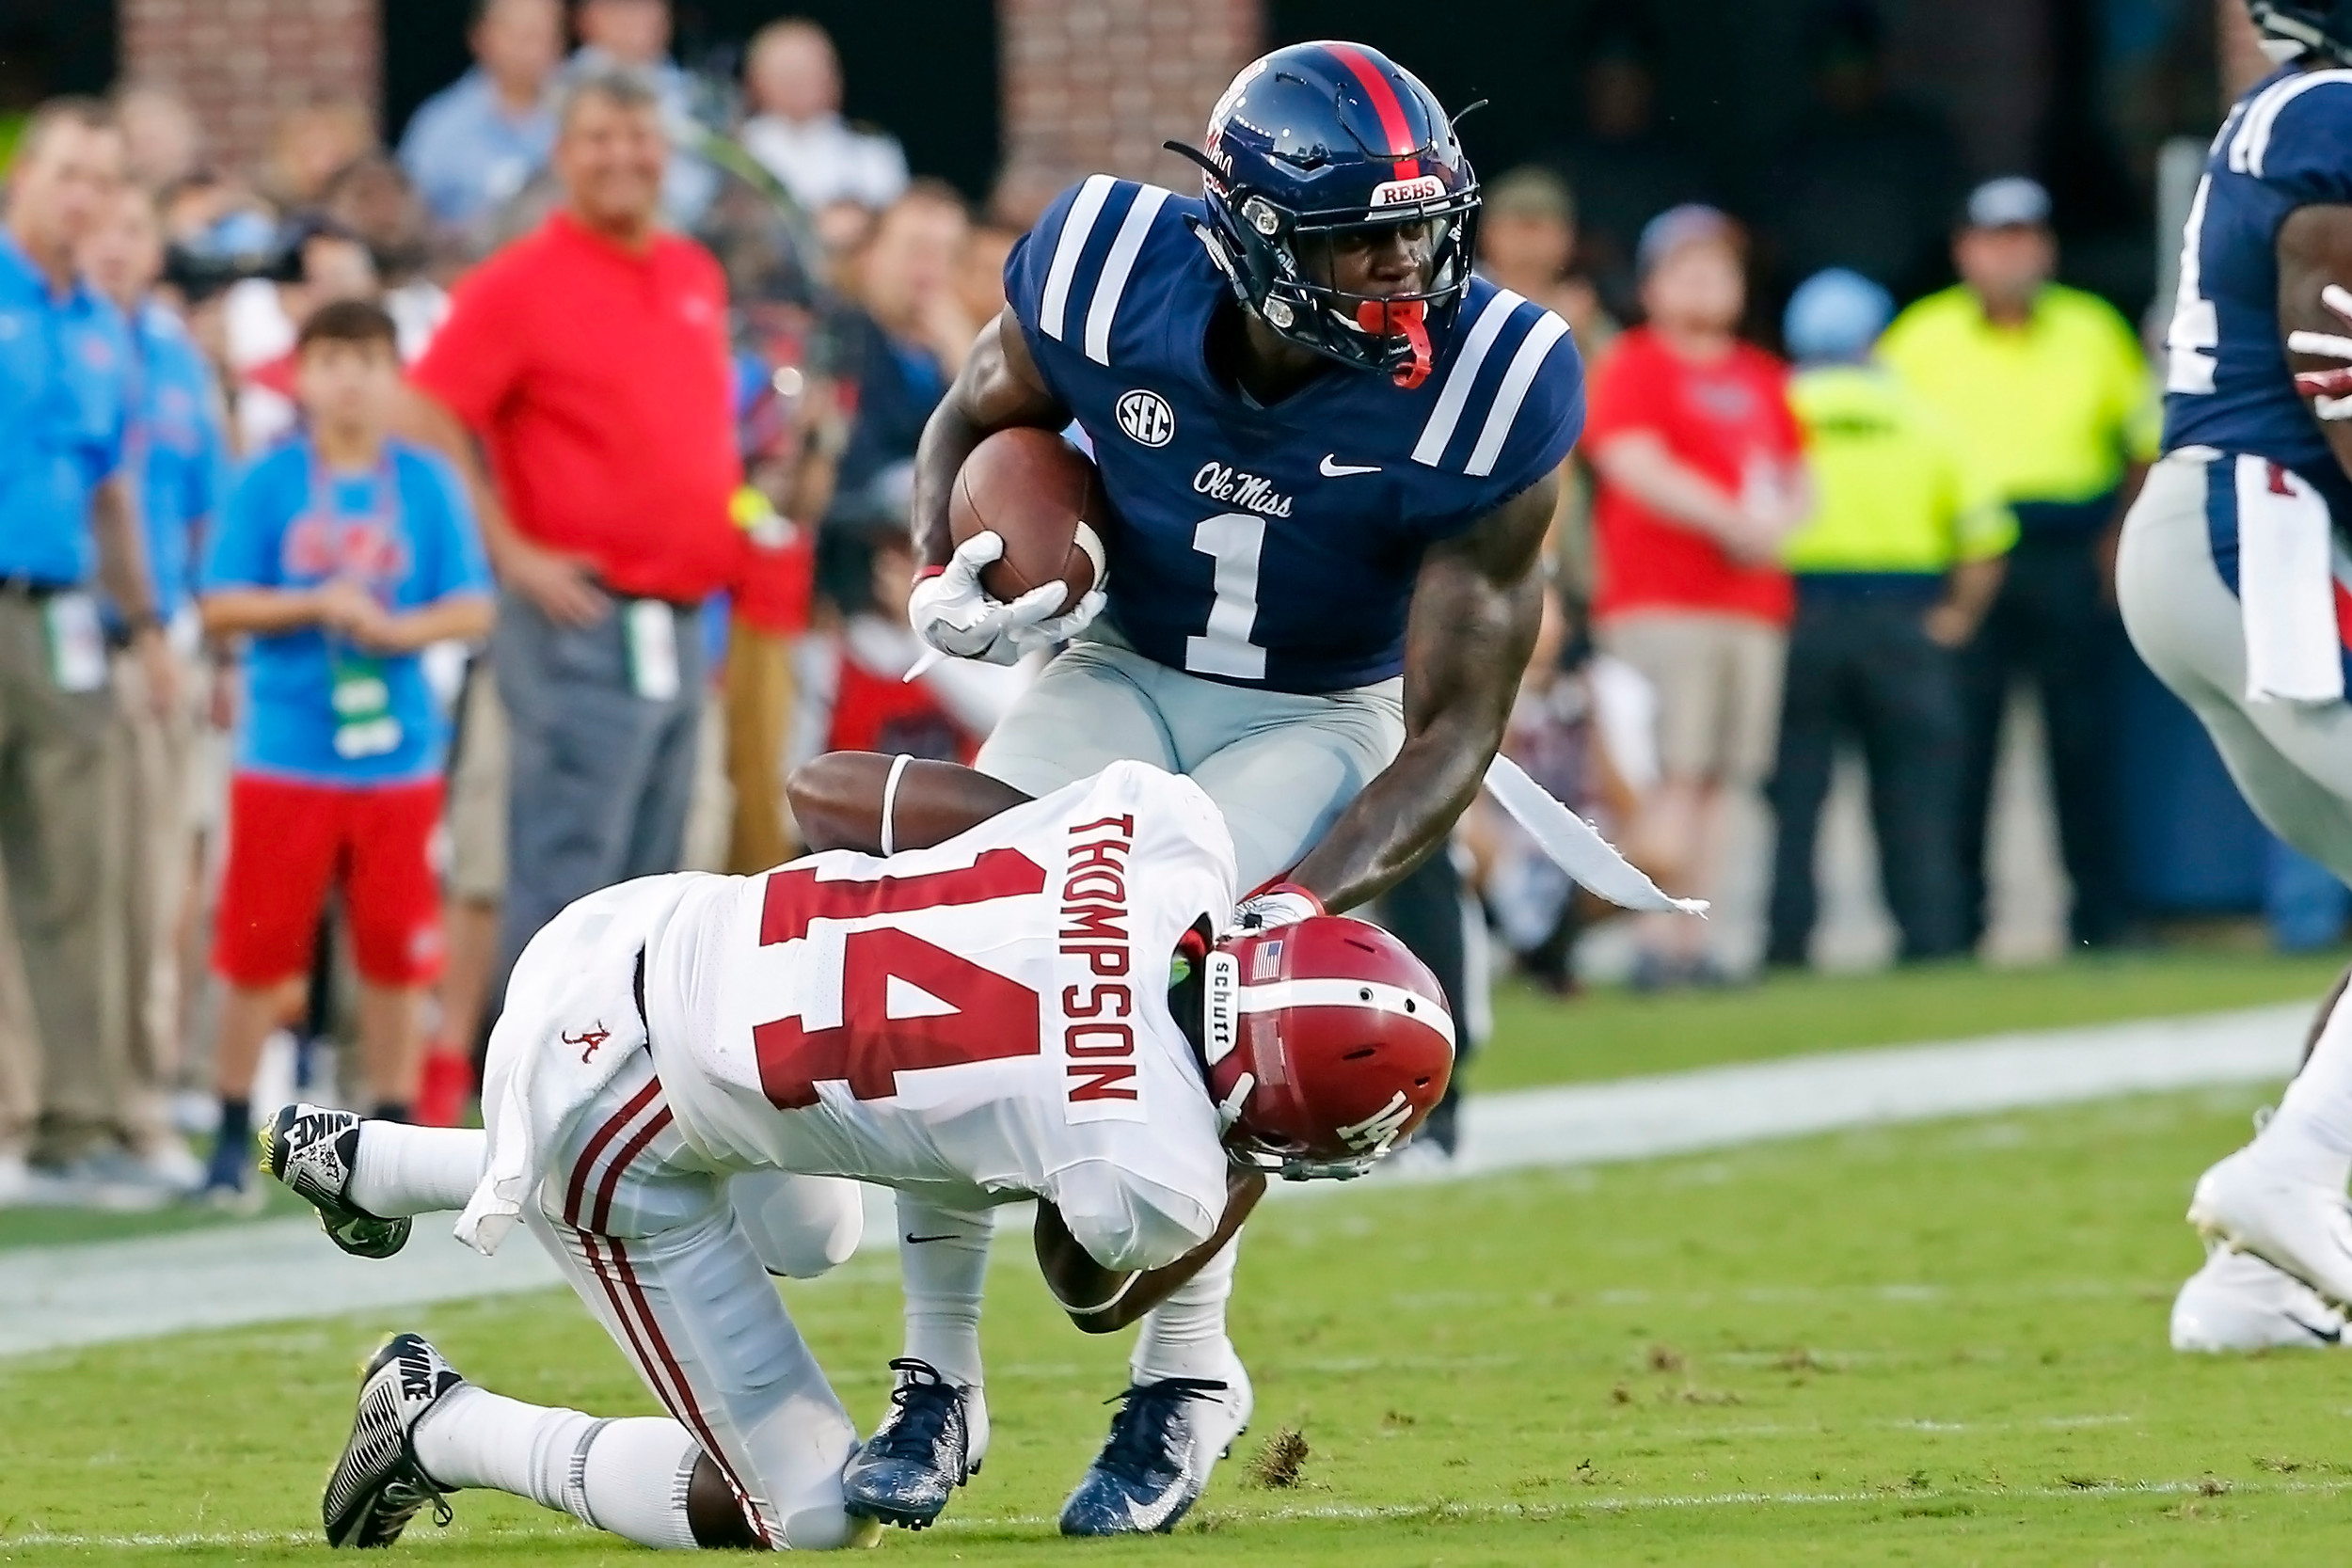 Alabama Crimson Tide defensive back Deionte Thompson (14) tackles Mississippi Rebels wide receiver A.J. Brown (1) during the game between the University of Alabama and Ole Miss at Vaught-Hemingway Stadium. Jason Clark / Daily Mountain Eagle